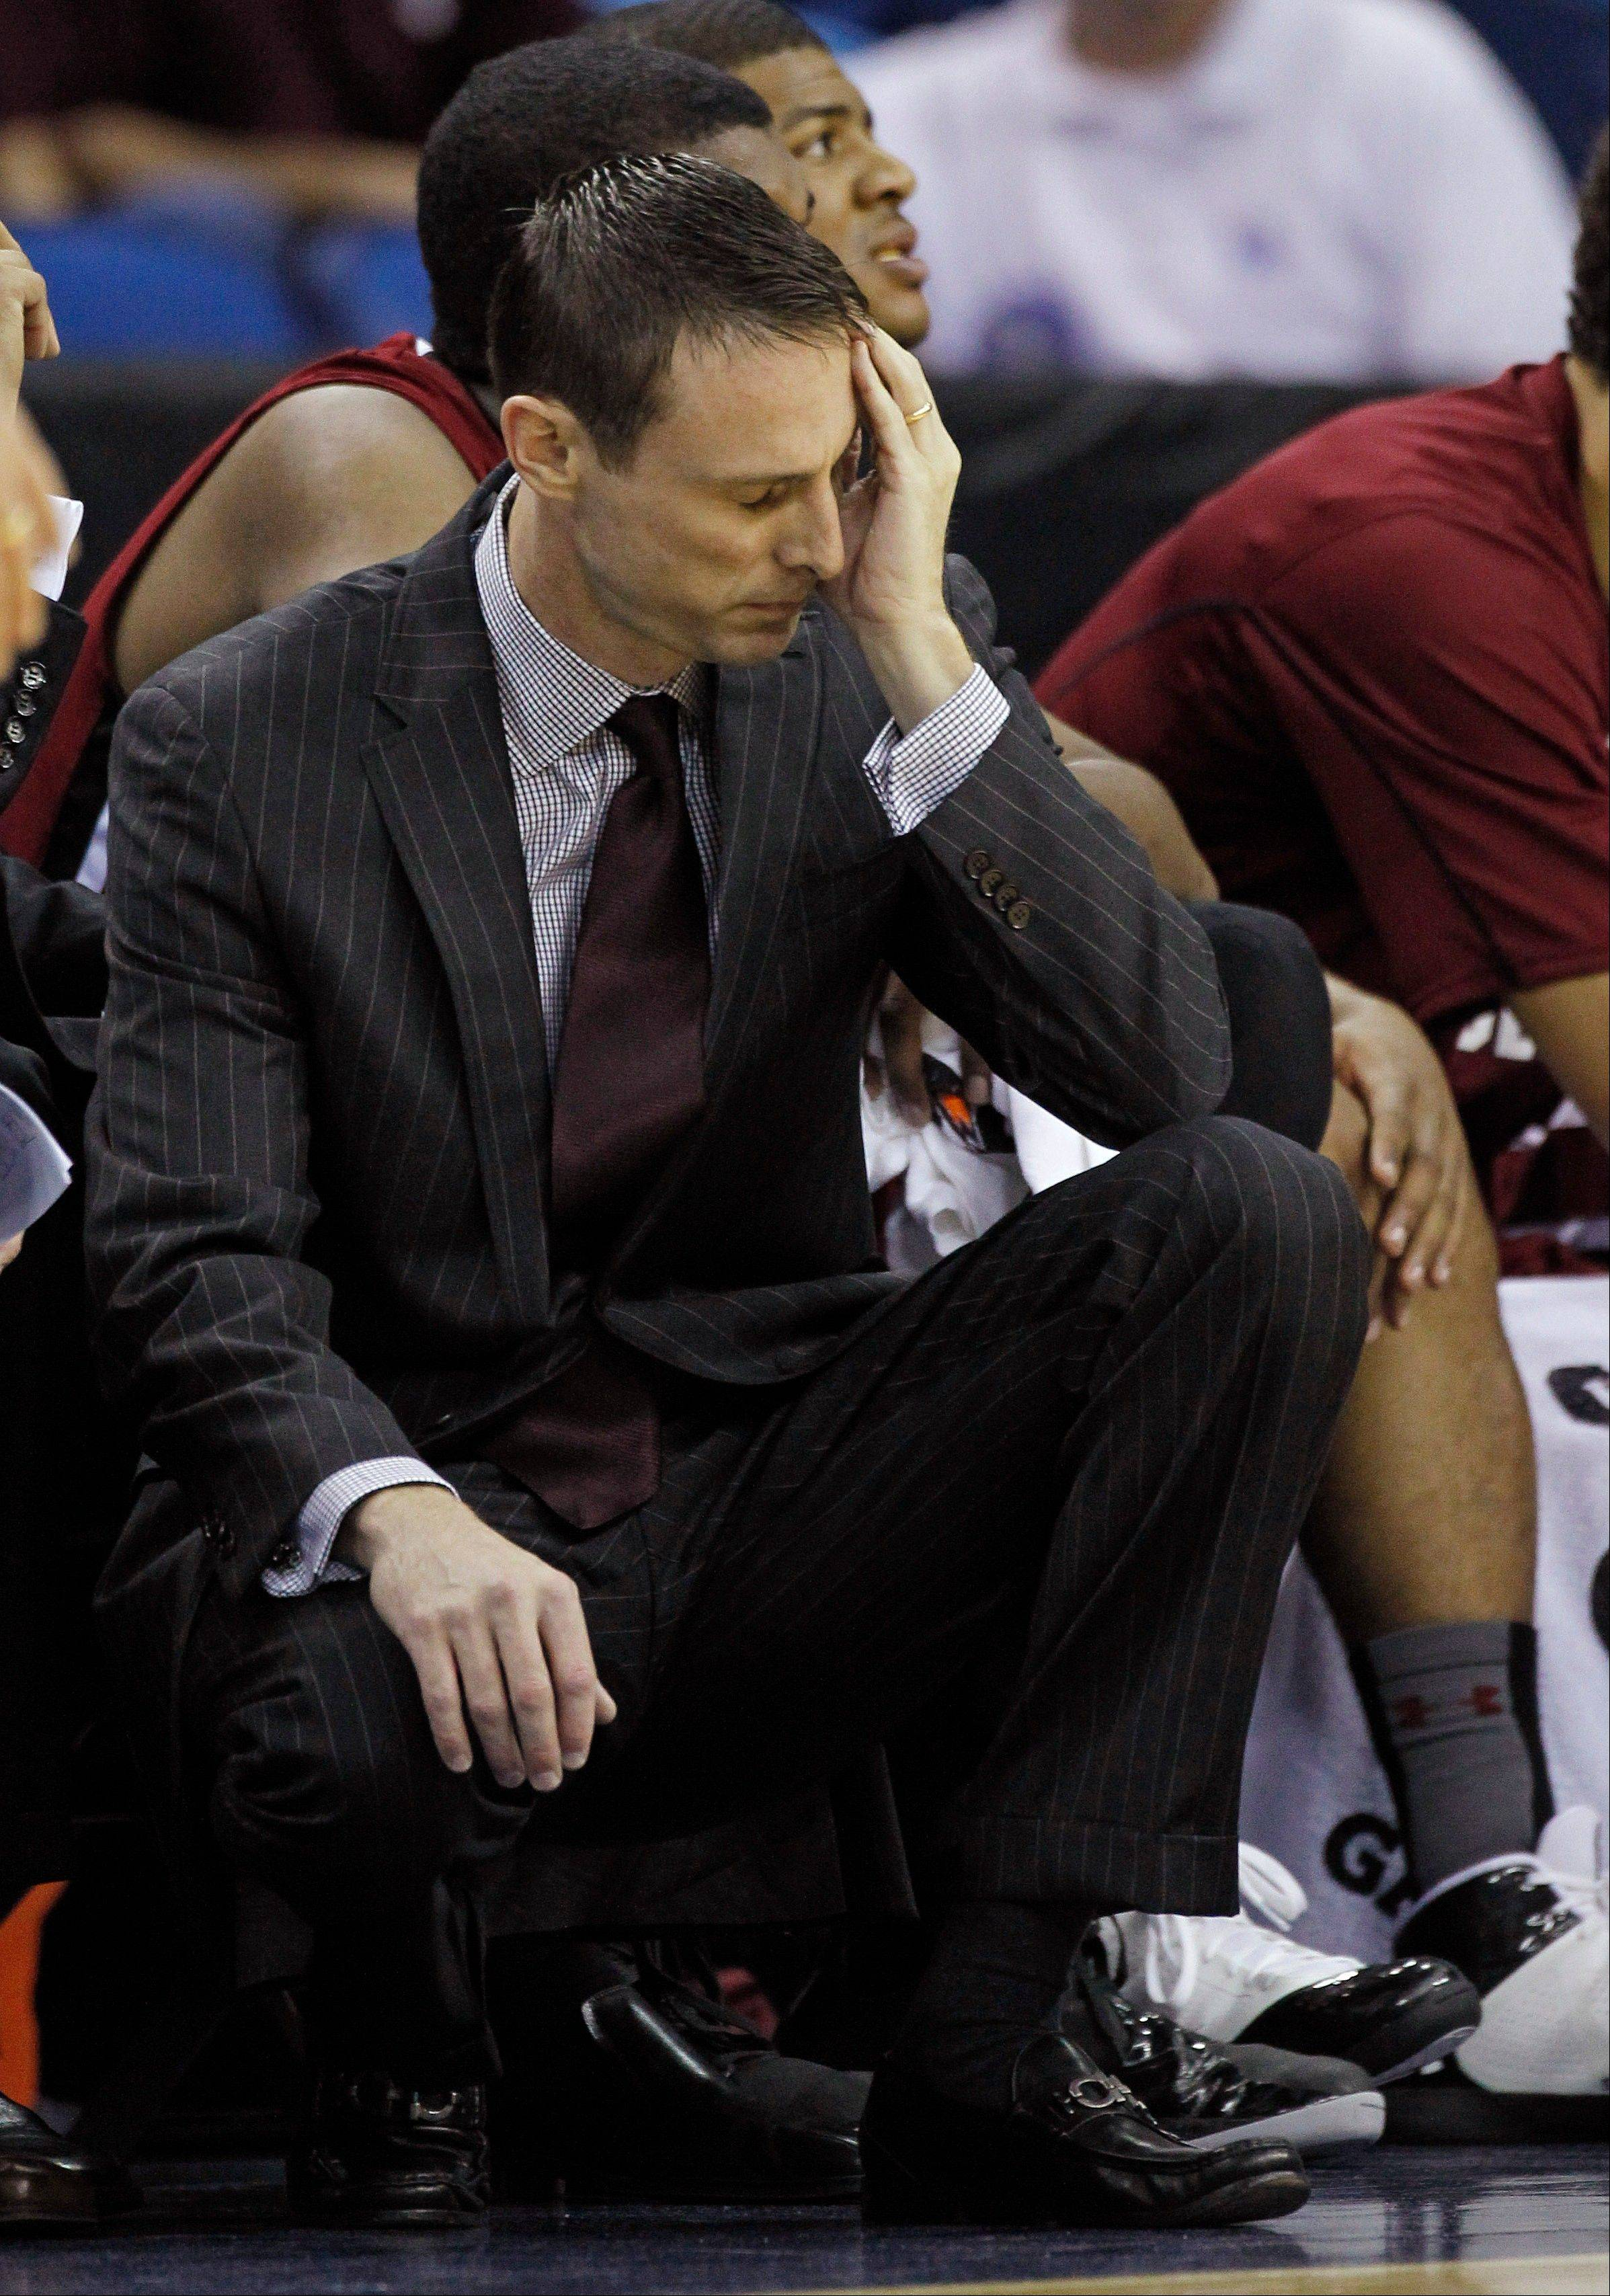 A person familiar with the decision says South Carolina has fired men's basketball coach Darrin Horn after the Gamecocks' disappointing season in the Southeastern Conference. The person spoke to The Associated Press on condition of anonymity because no public announcement has been made.